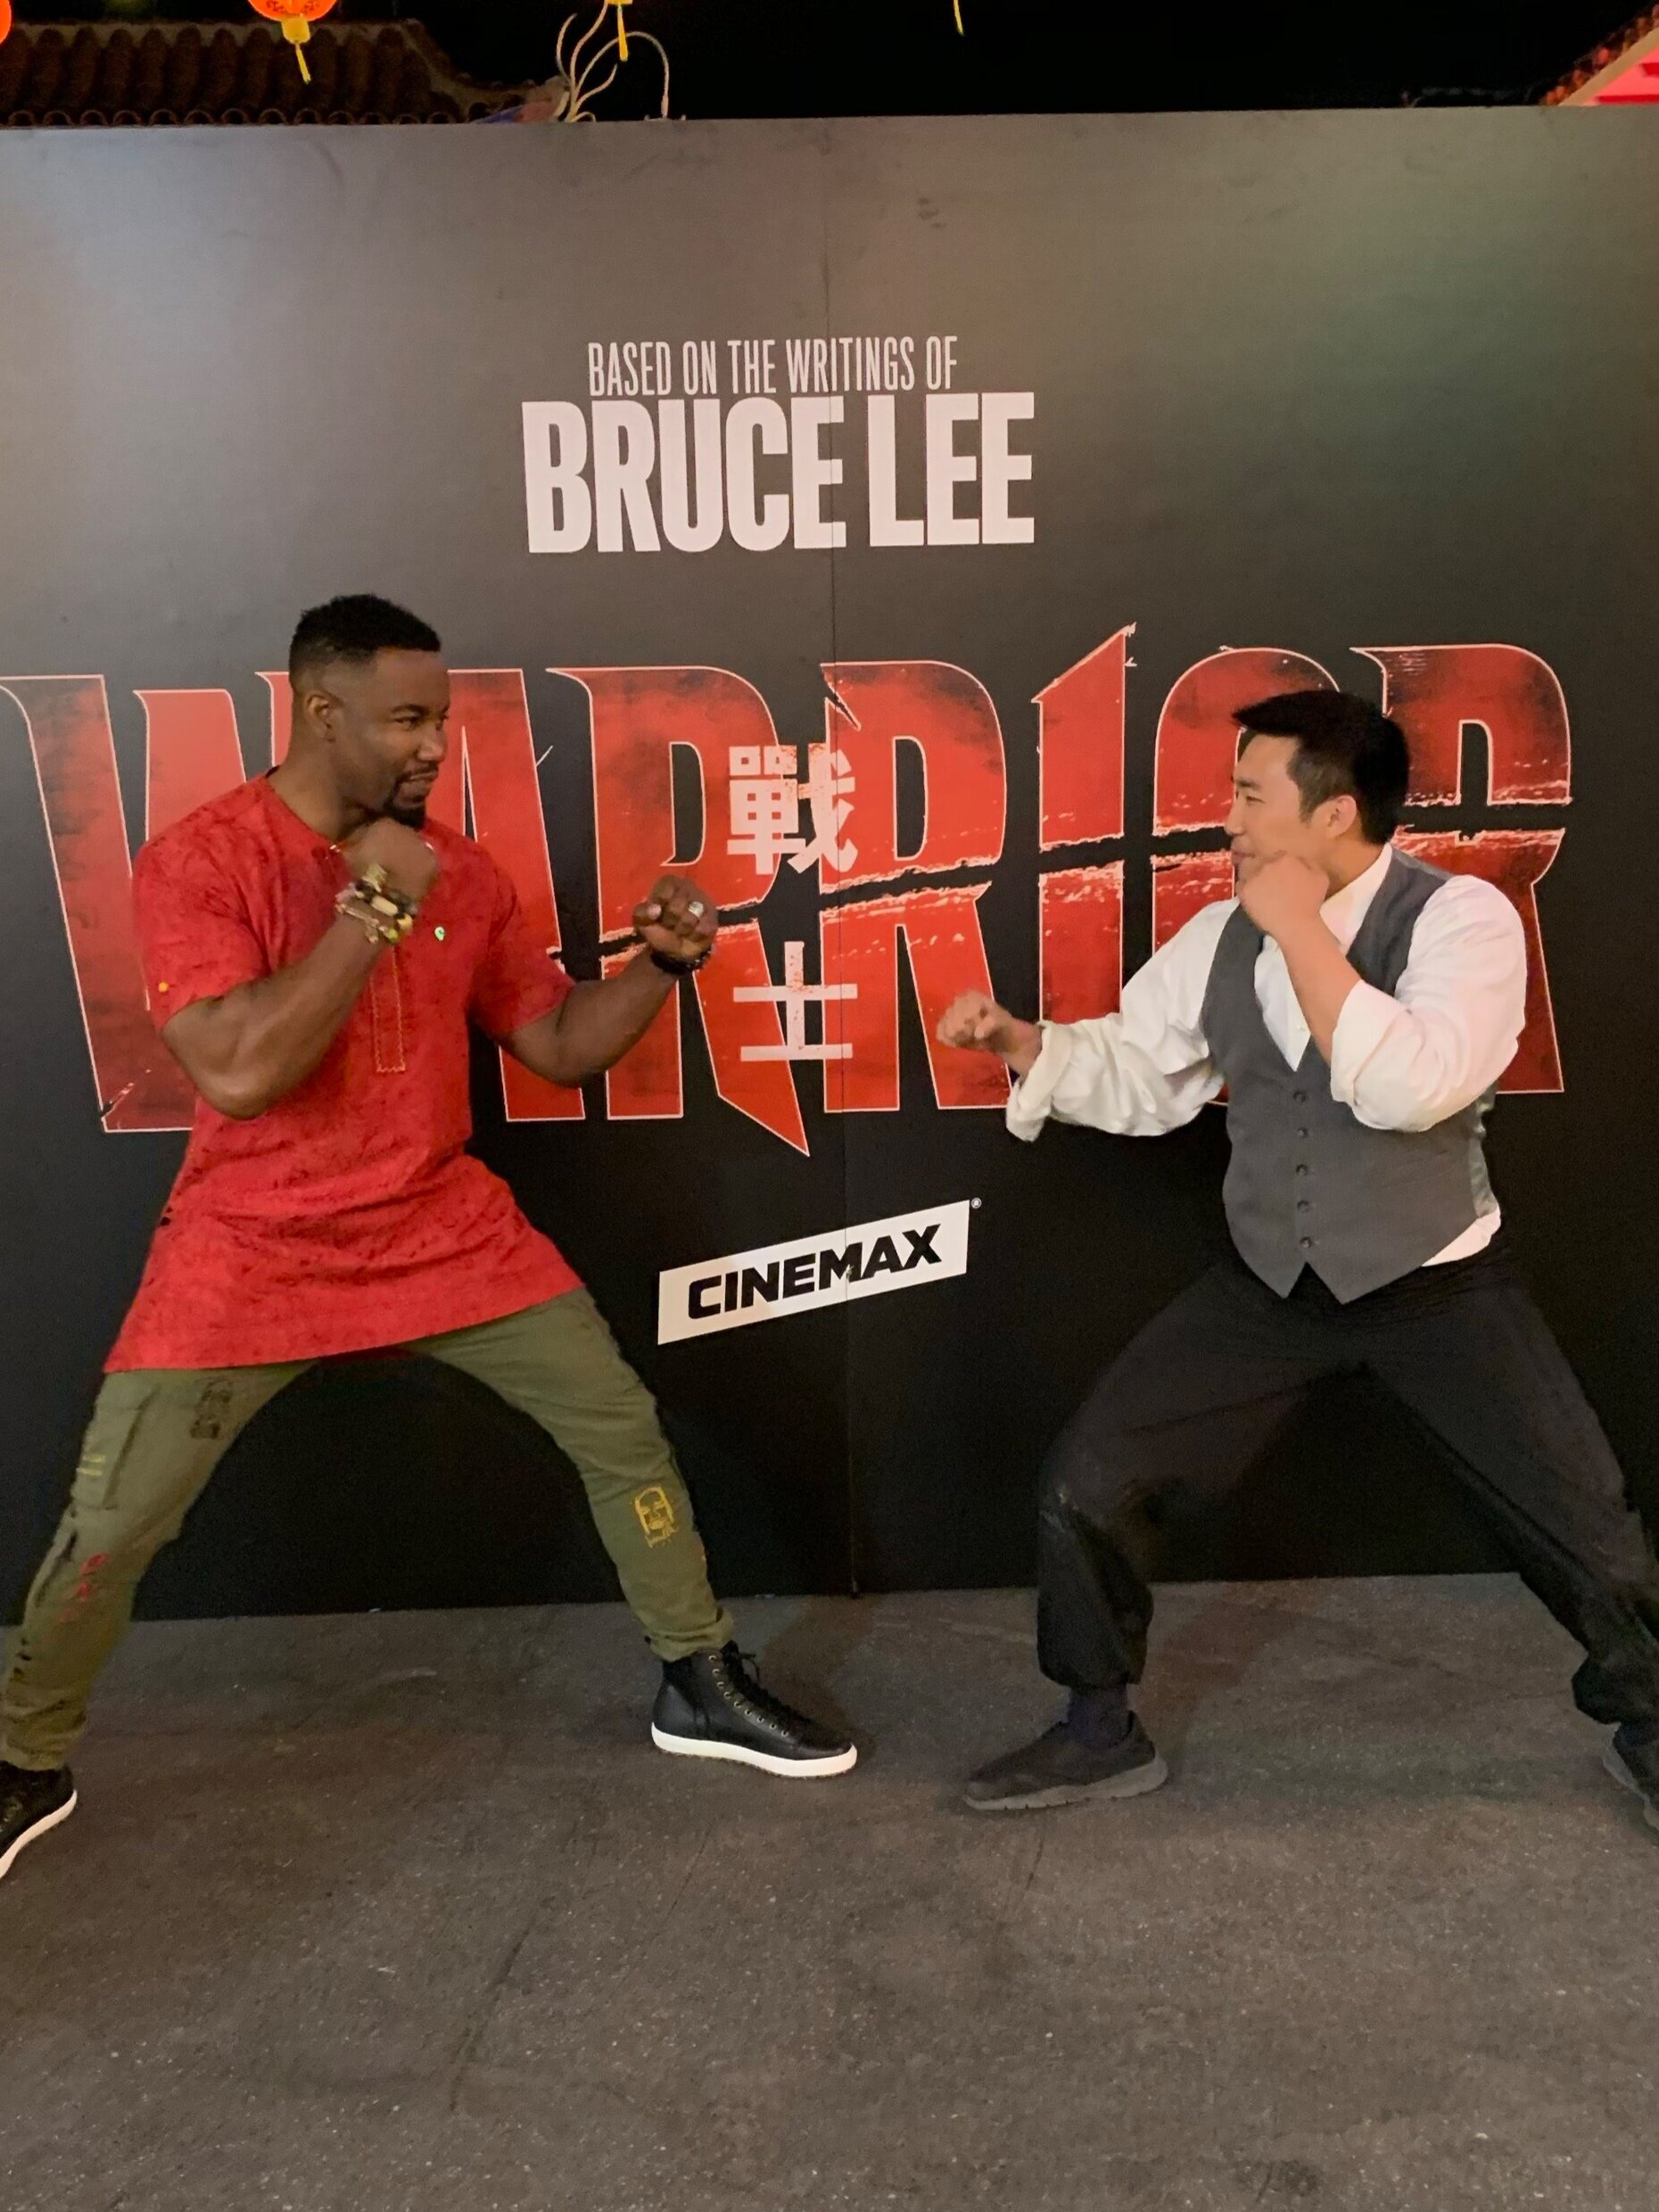 Director, Actor, and Martial Artist Michael Jai White